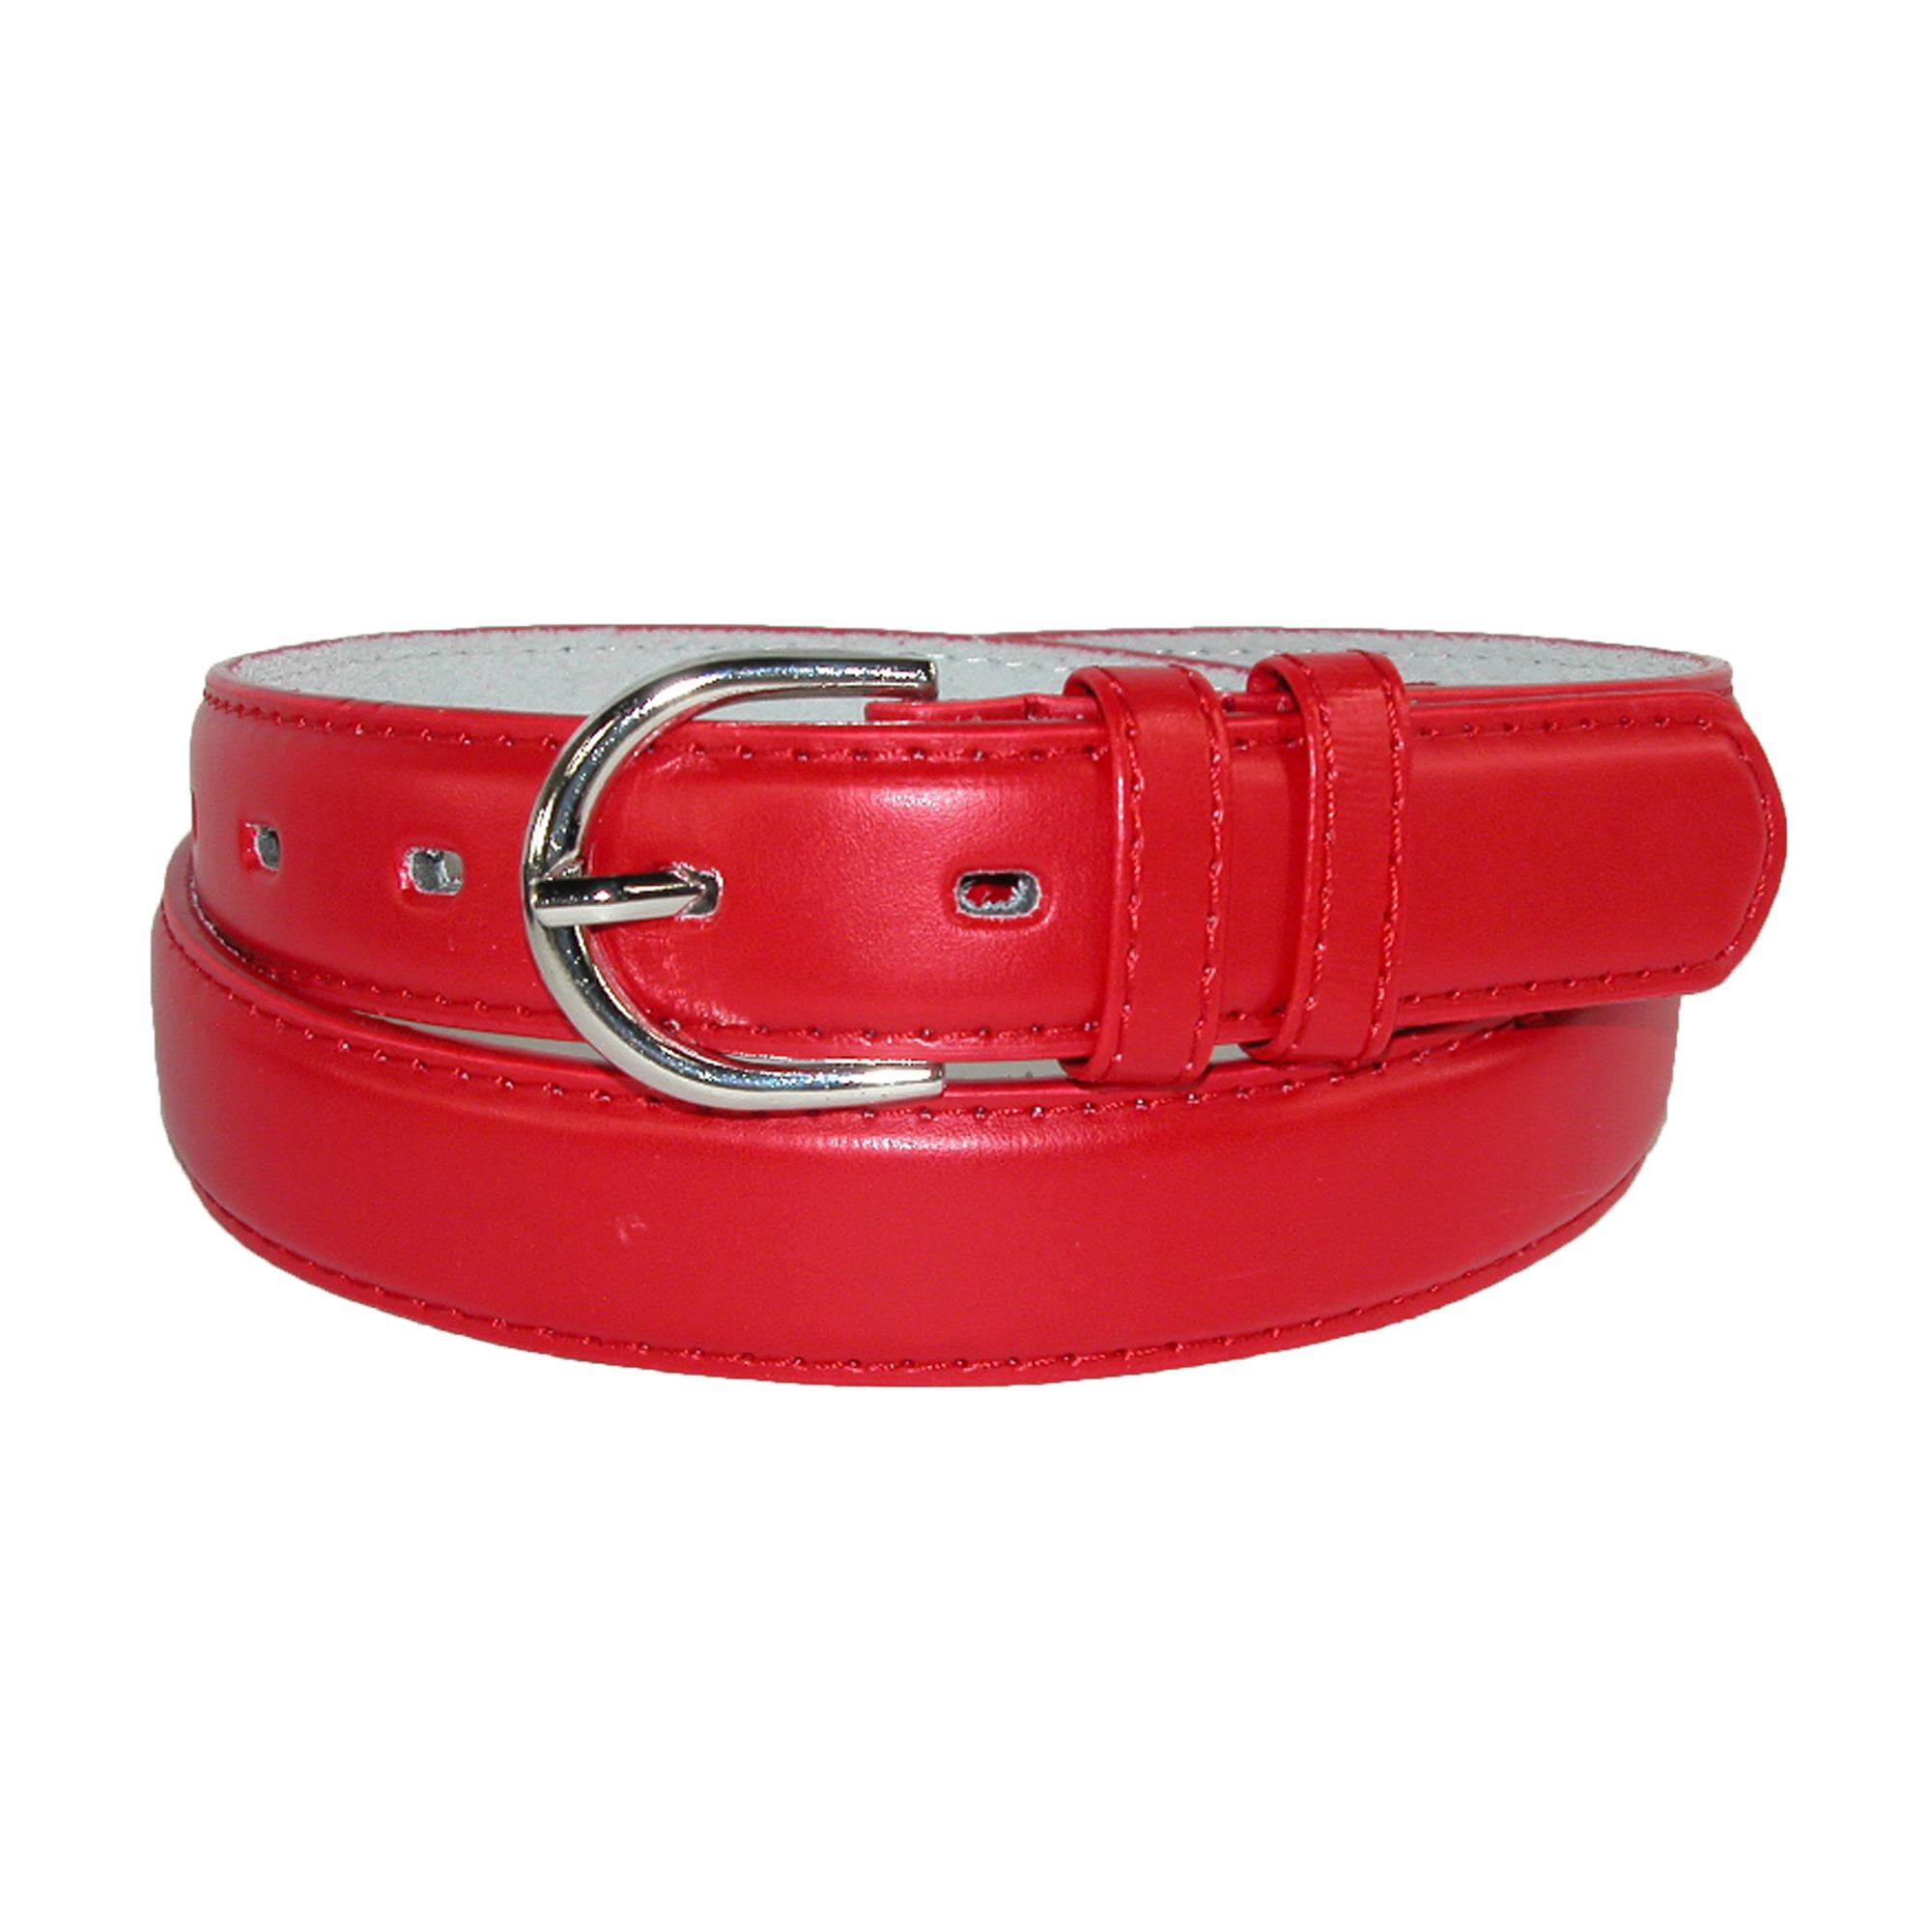 CTM Women's Leather 1 1/8 Inch Dress Belt - Red S